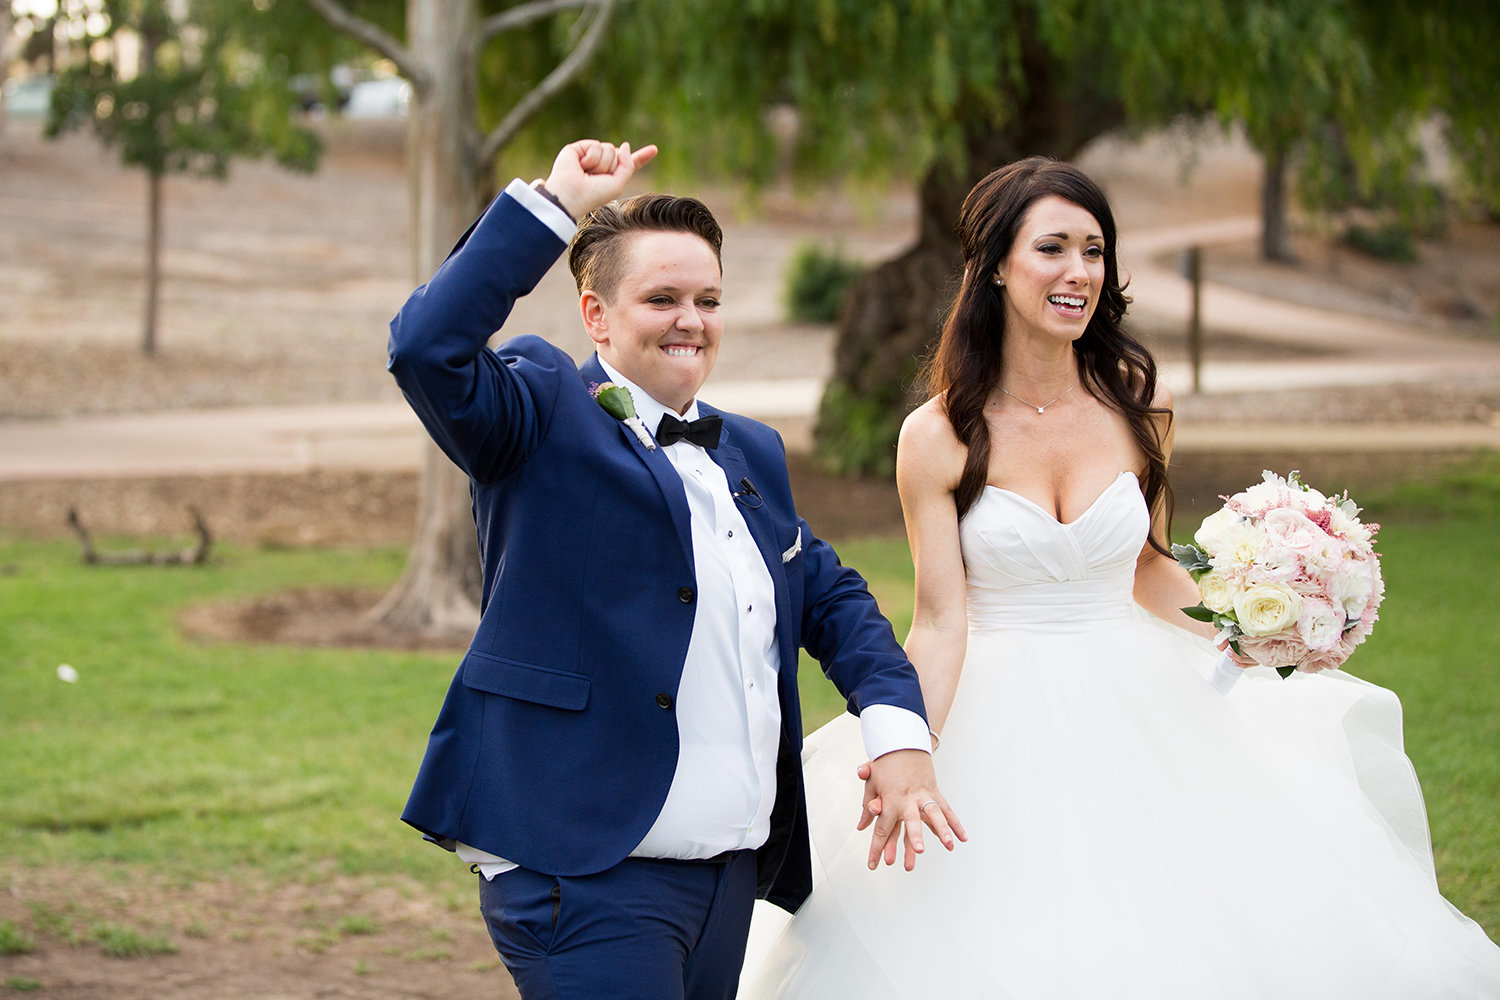 Married! Lets party.  Brides celebrate after their wedding ceremony at Balboa Park in San Diego | LGBT Wedding